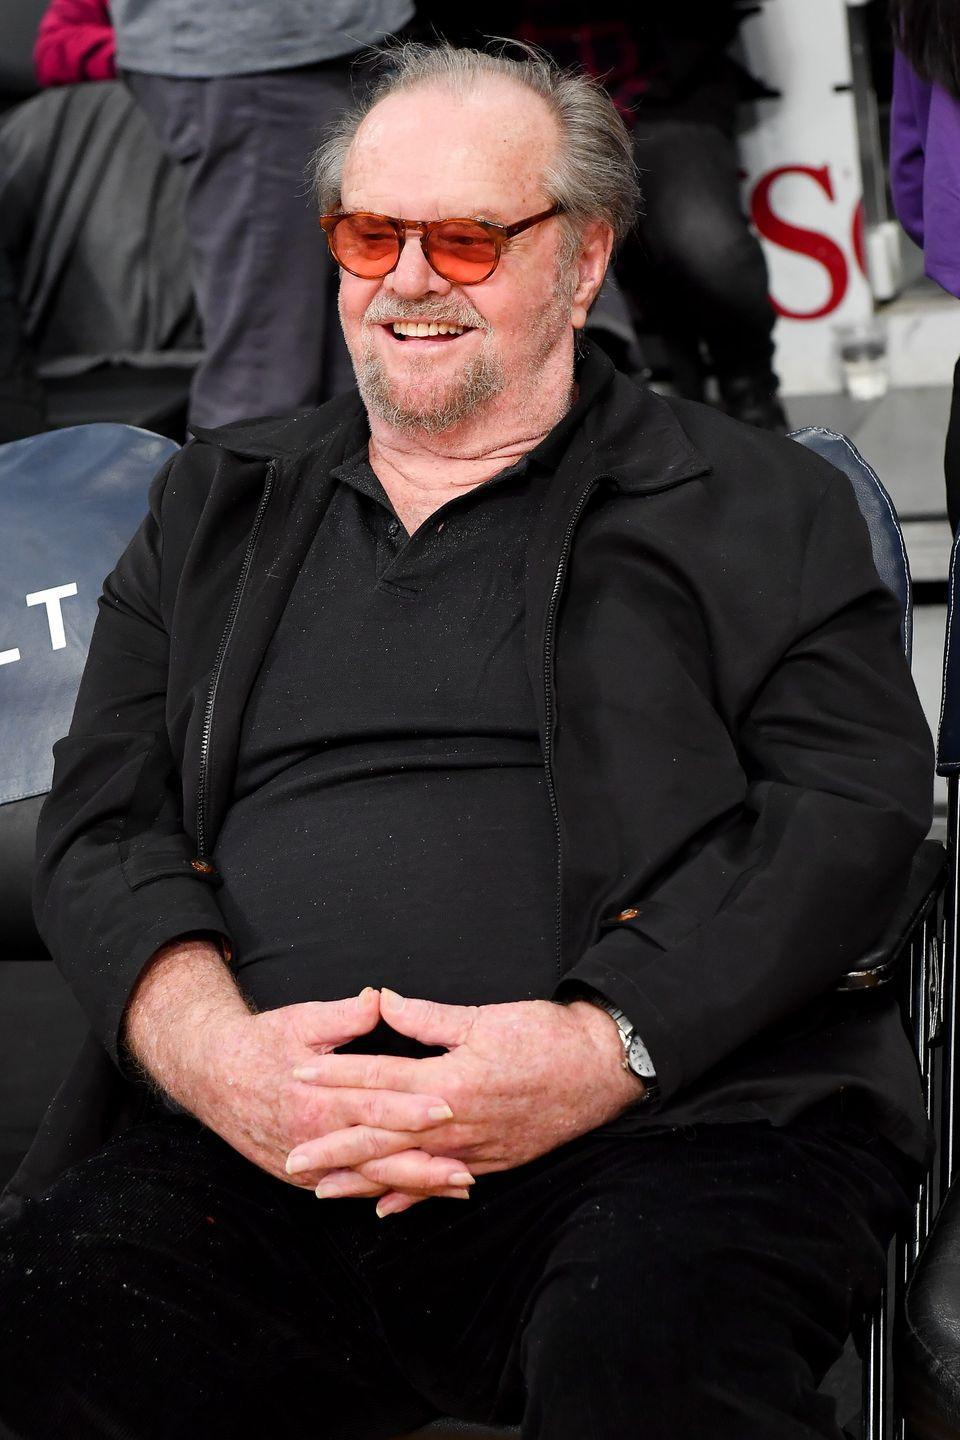 "<p>Now: Nicholson has had a <a href=""https://www.imdb.com/name/nm0000197/bio?ref_=nm_ov_bio_sm"" rel=""nofollow noopener"" target=""_blank"" data-ylk=""slk:massively successful career"" class=""link rapid-noclick-resp"">massively successful career </a>filled with movies like One Flew Over the Cuckoo's Nest, The Shining, Batman and The Departed. He has three Academy Awards, three BAFTA Awards, six Golden Globes, one Grammy and one Screen Actors Guild Award.</p>"